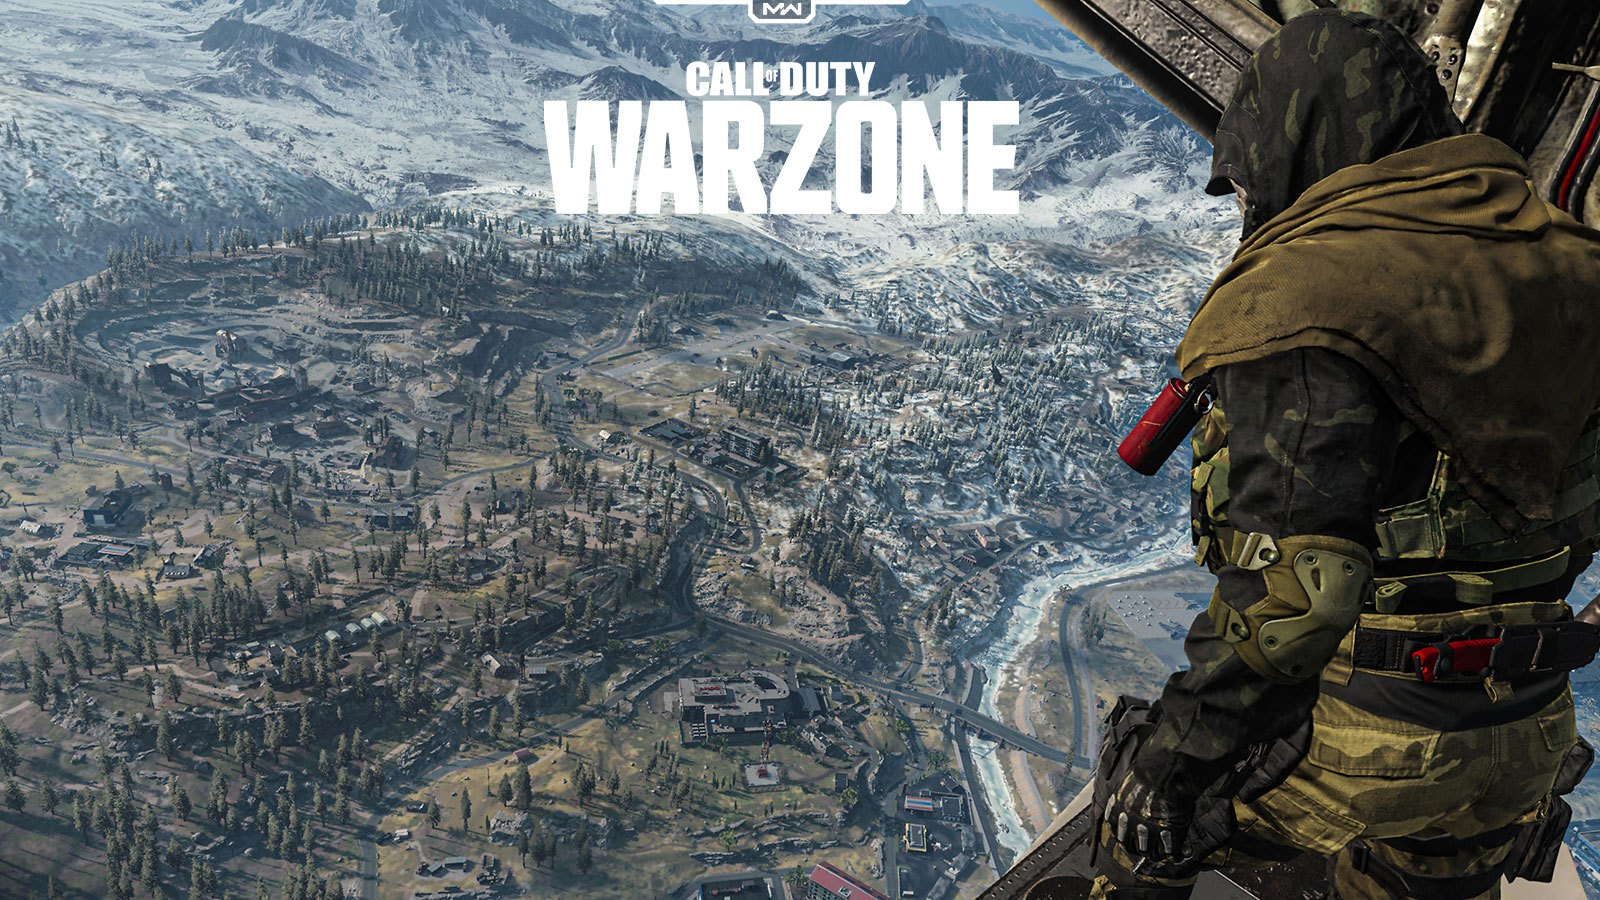 Call of Duty Warzone Infinity Ward Activision